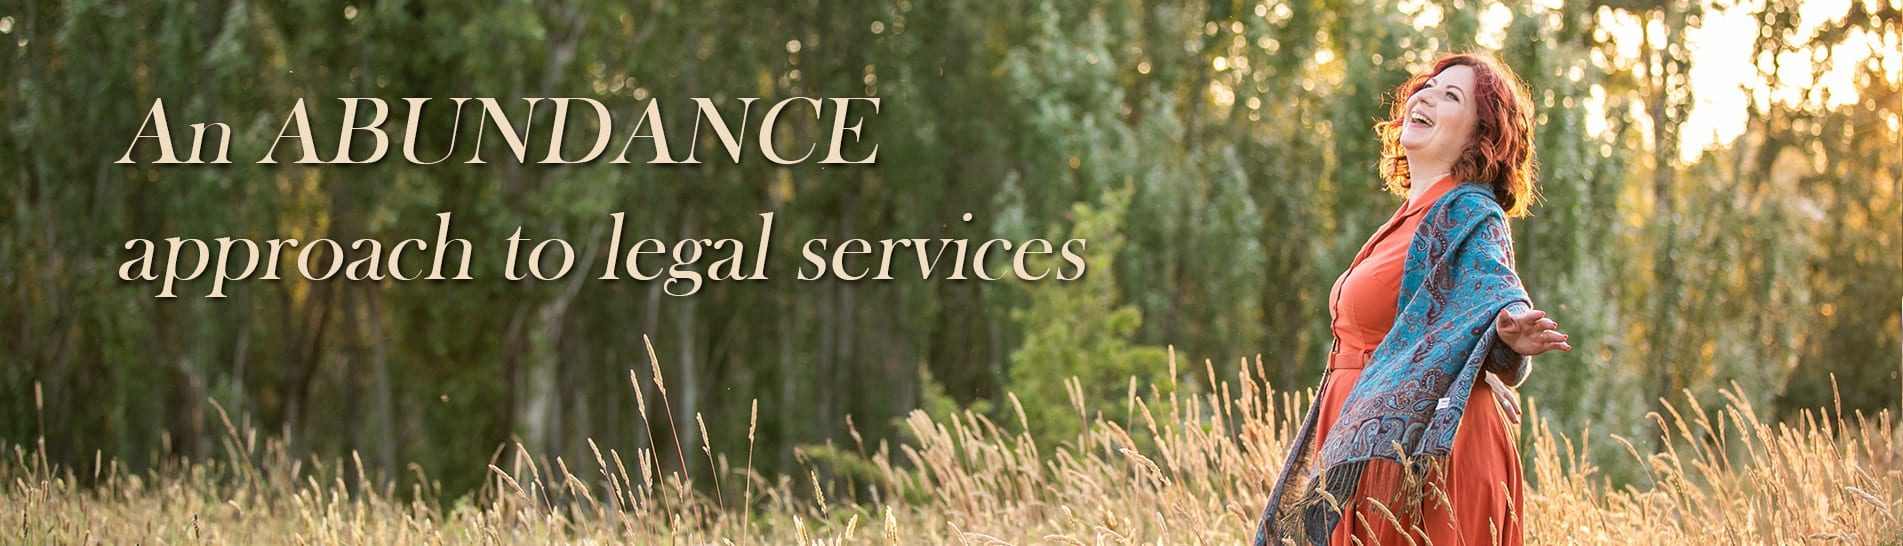 Latterell Law - Business and Legal Advice based on Abundance